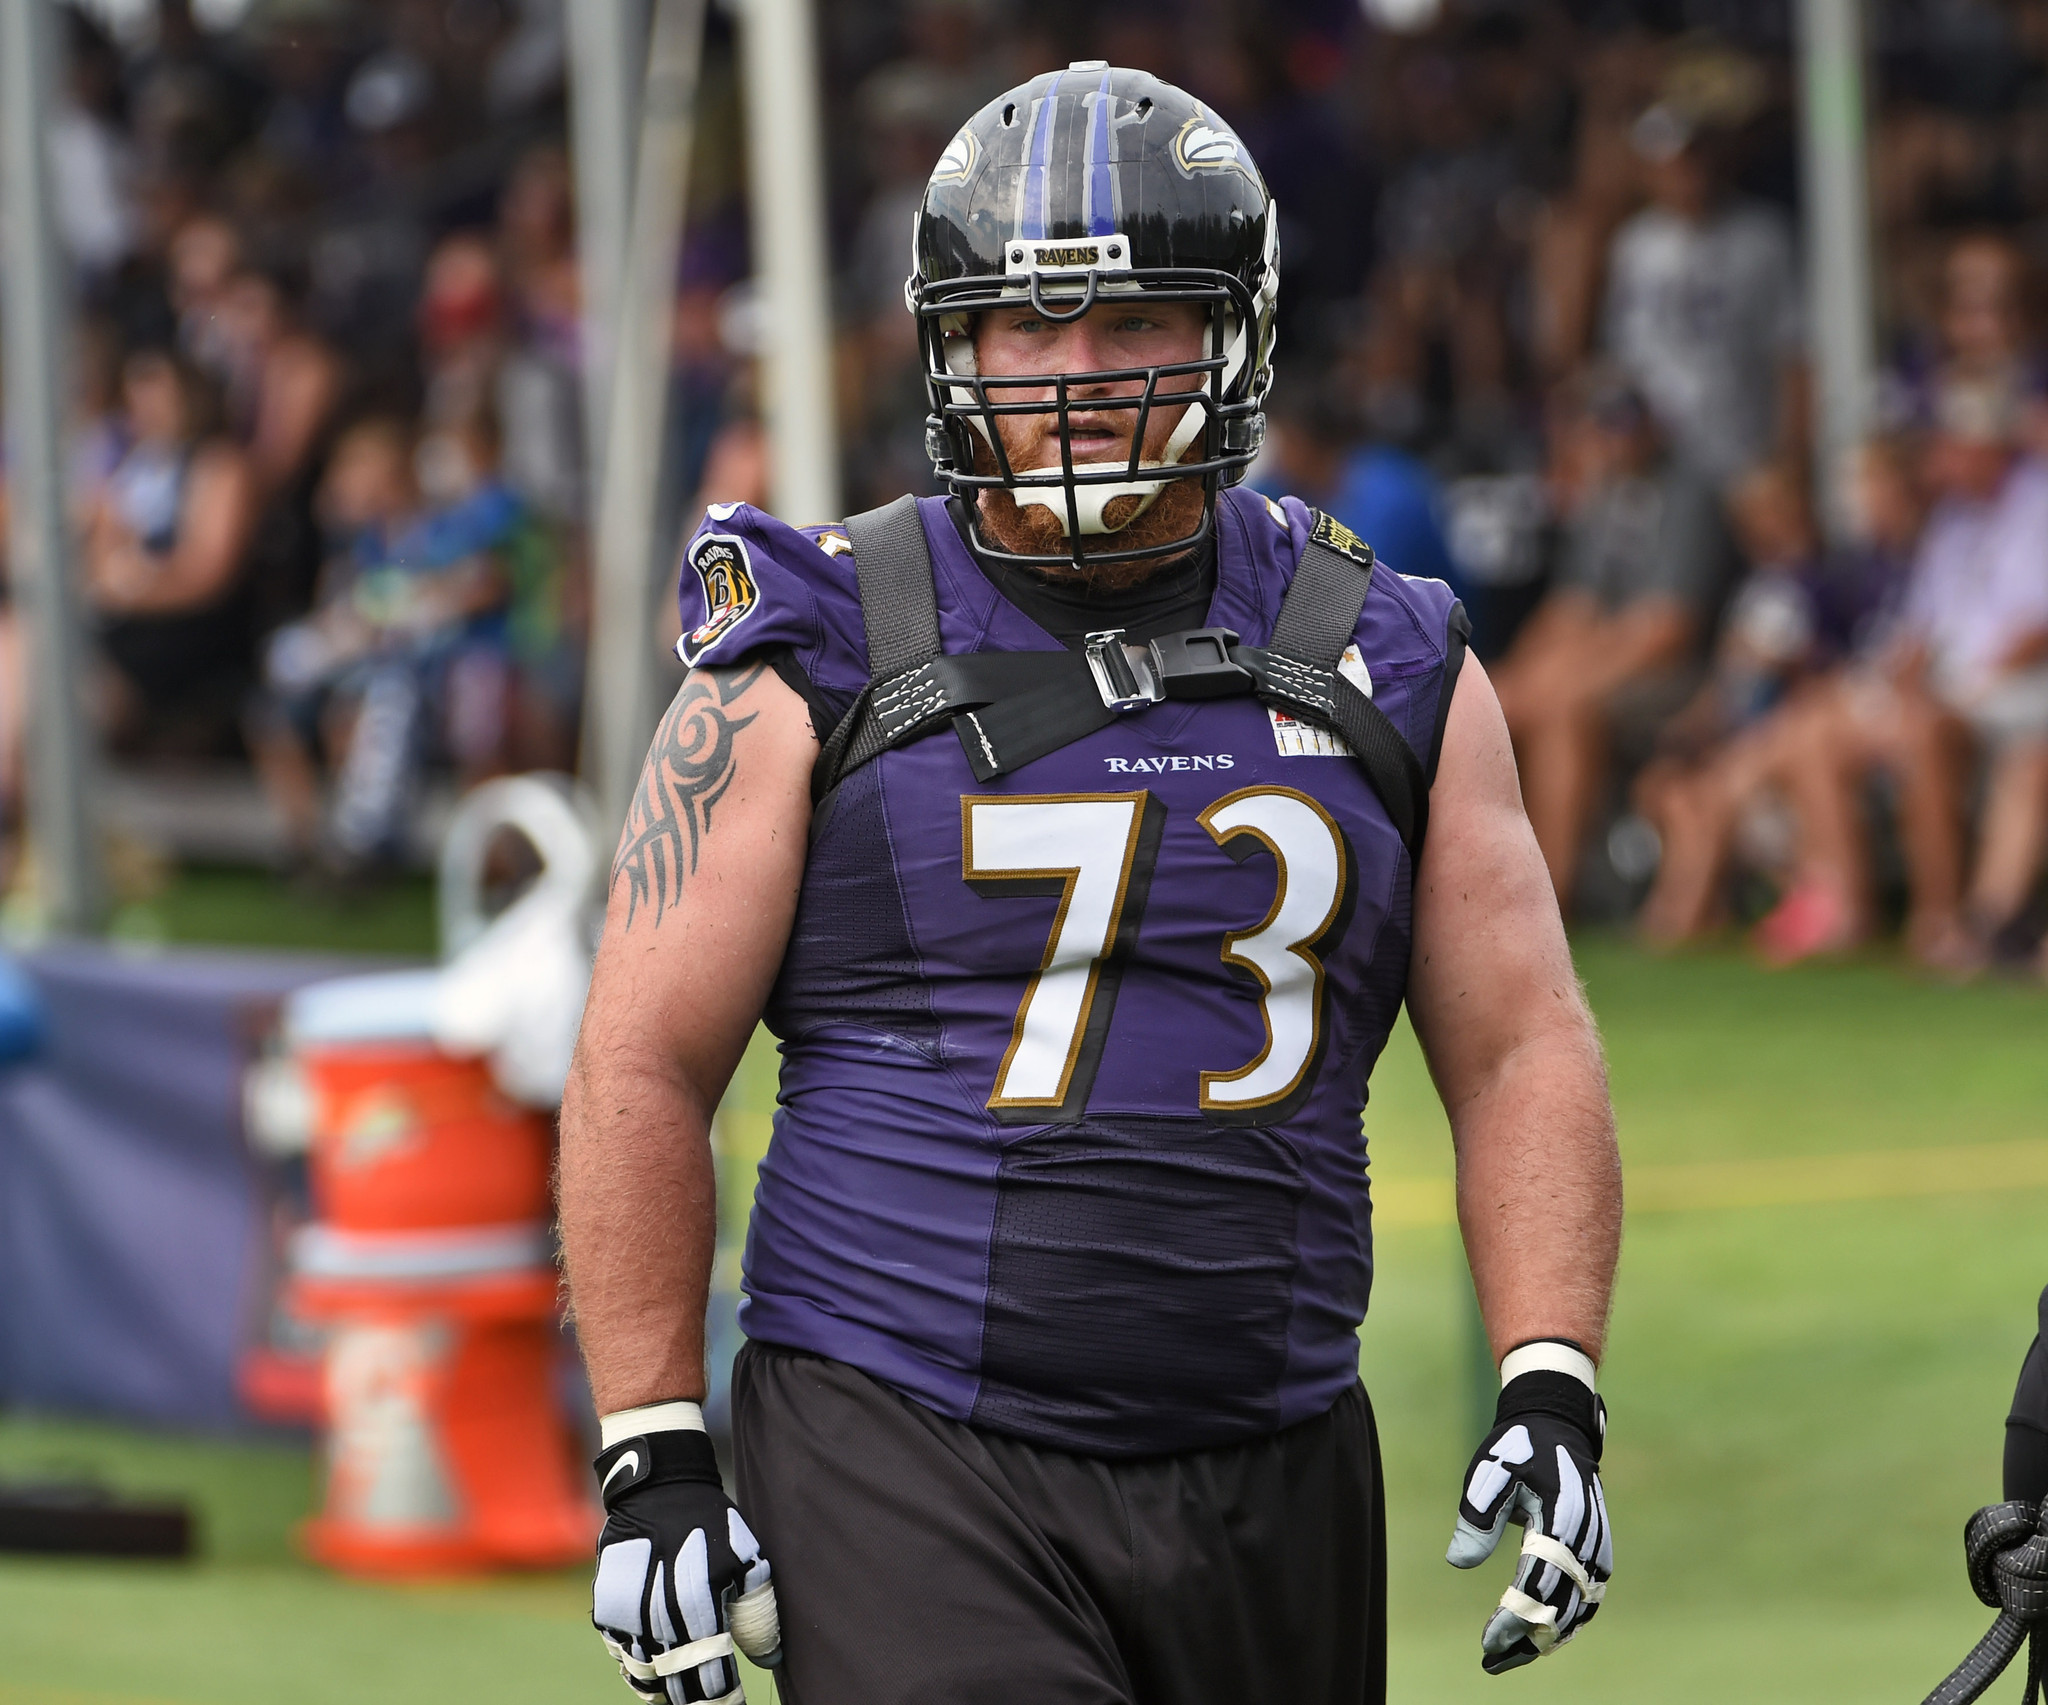 Bal-ravens-guard-marshal-yanda-embracing-role-as-offensive-line-s-veteran-20160729